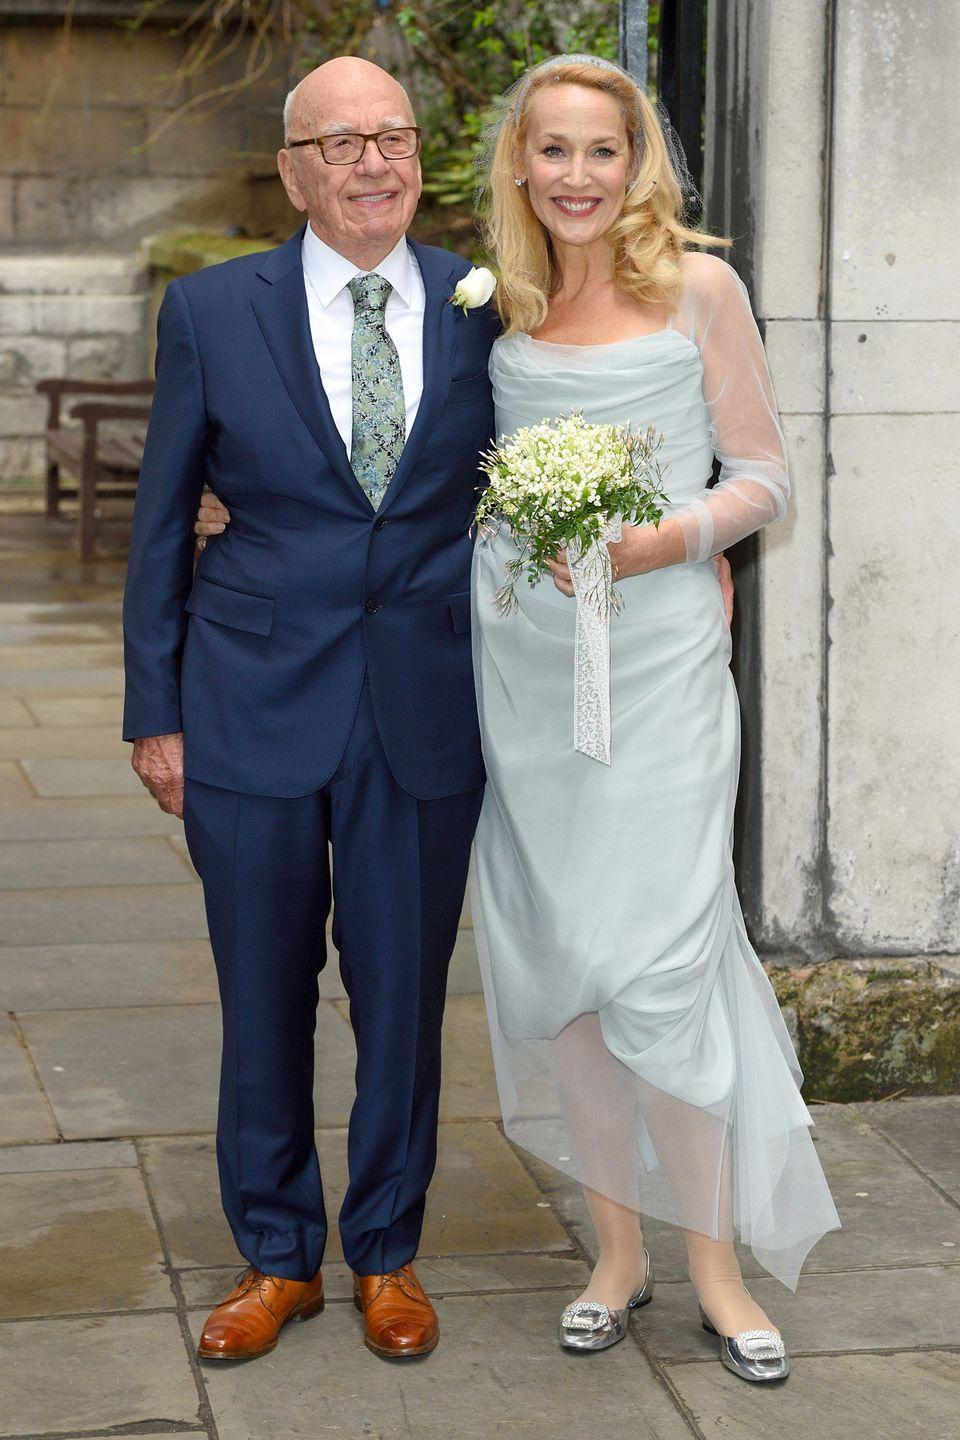 "<p>Instead of wearing white (technically it was her first wedding, since her 1990 nuptials to Mick Jagger were annulled), the model and actress wore a light blue <span class=""redactor-unlink"">Vivienne Westwood</span> dress. </p>"